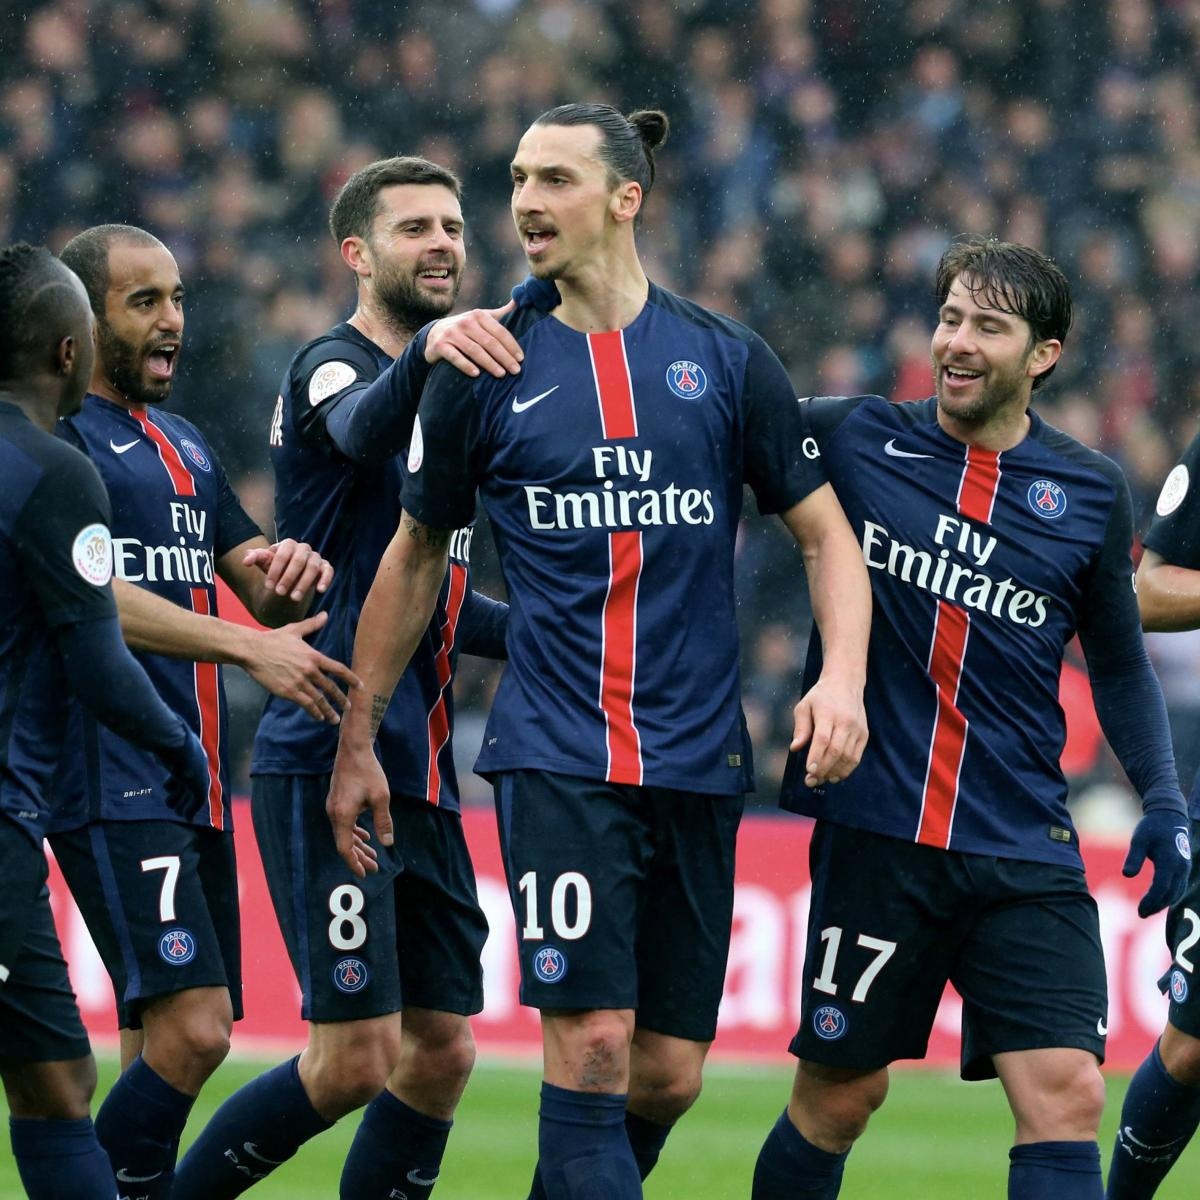 Zlatan Ibrahimovic Is Ready For Manchester City But PSG's